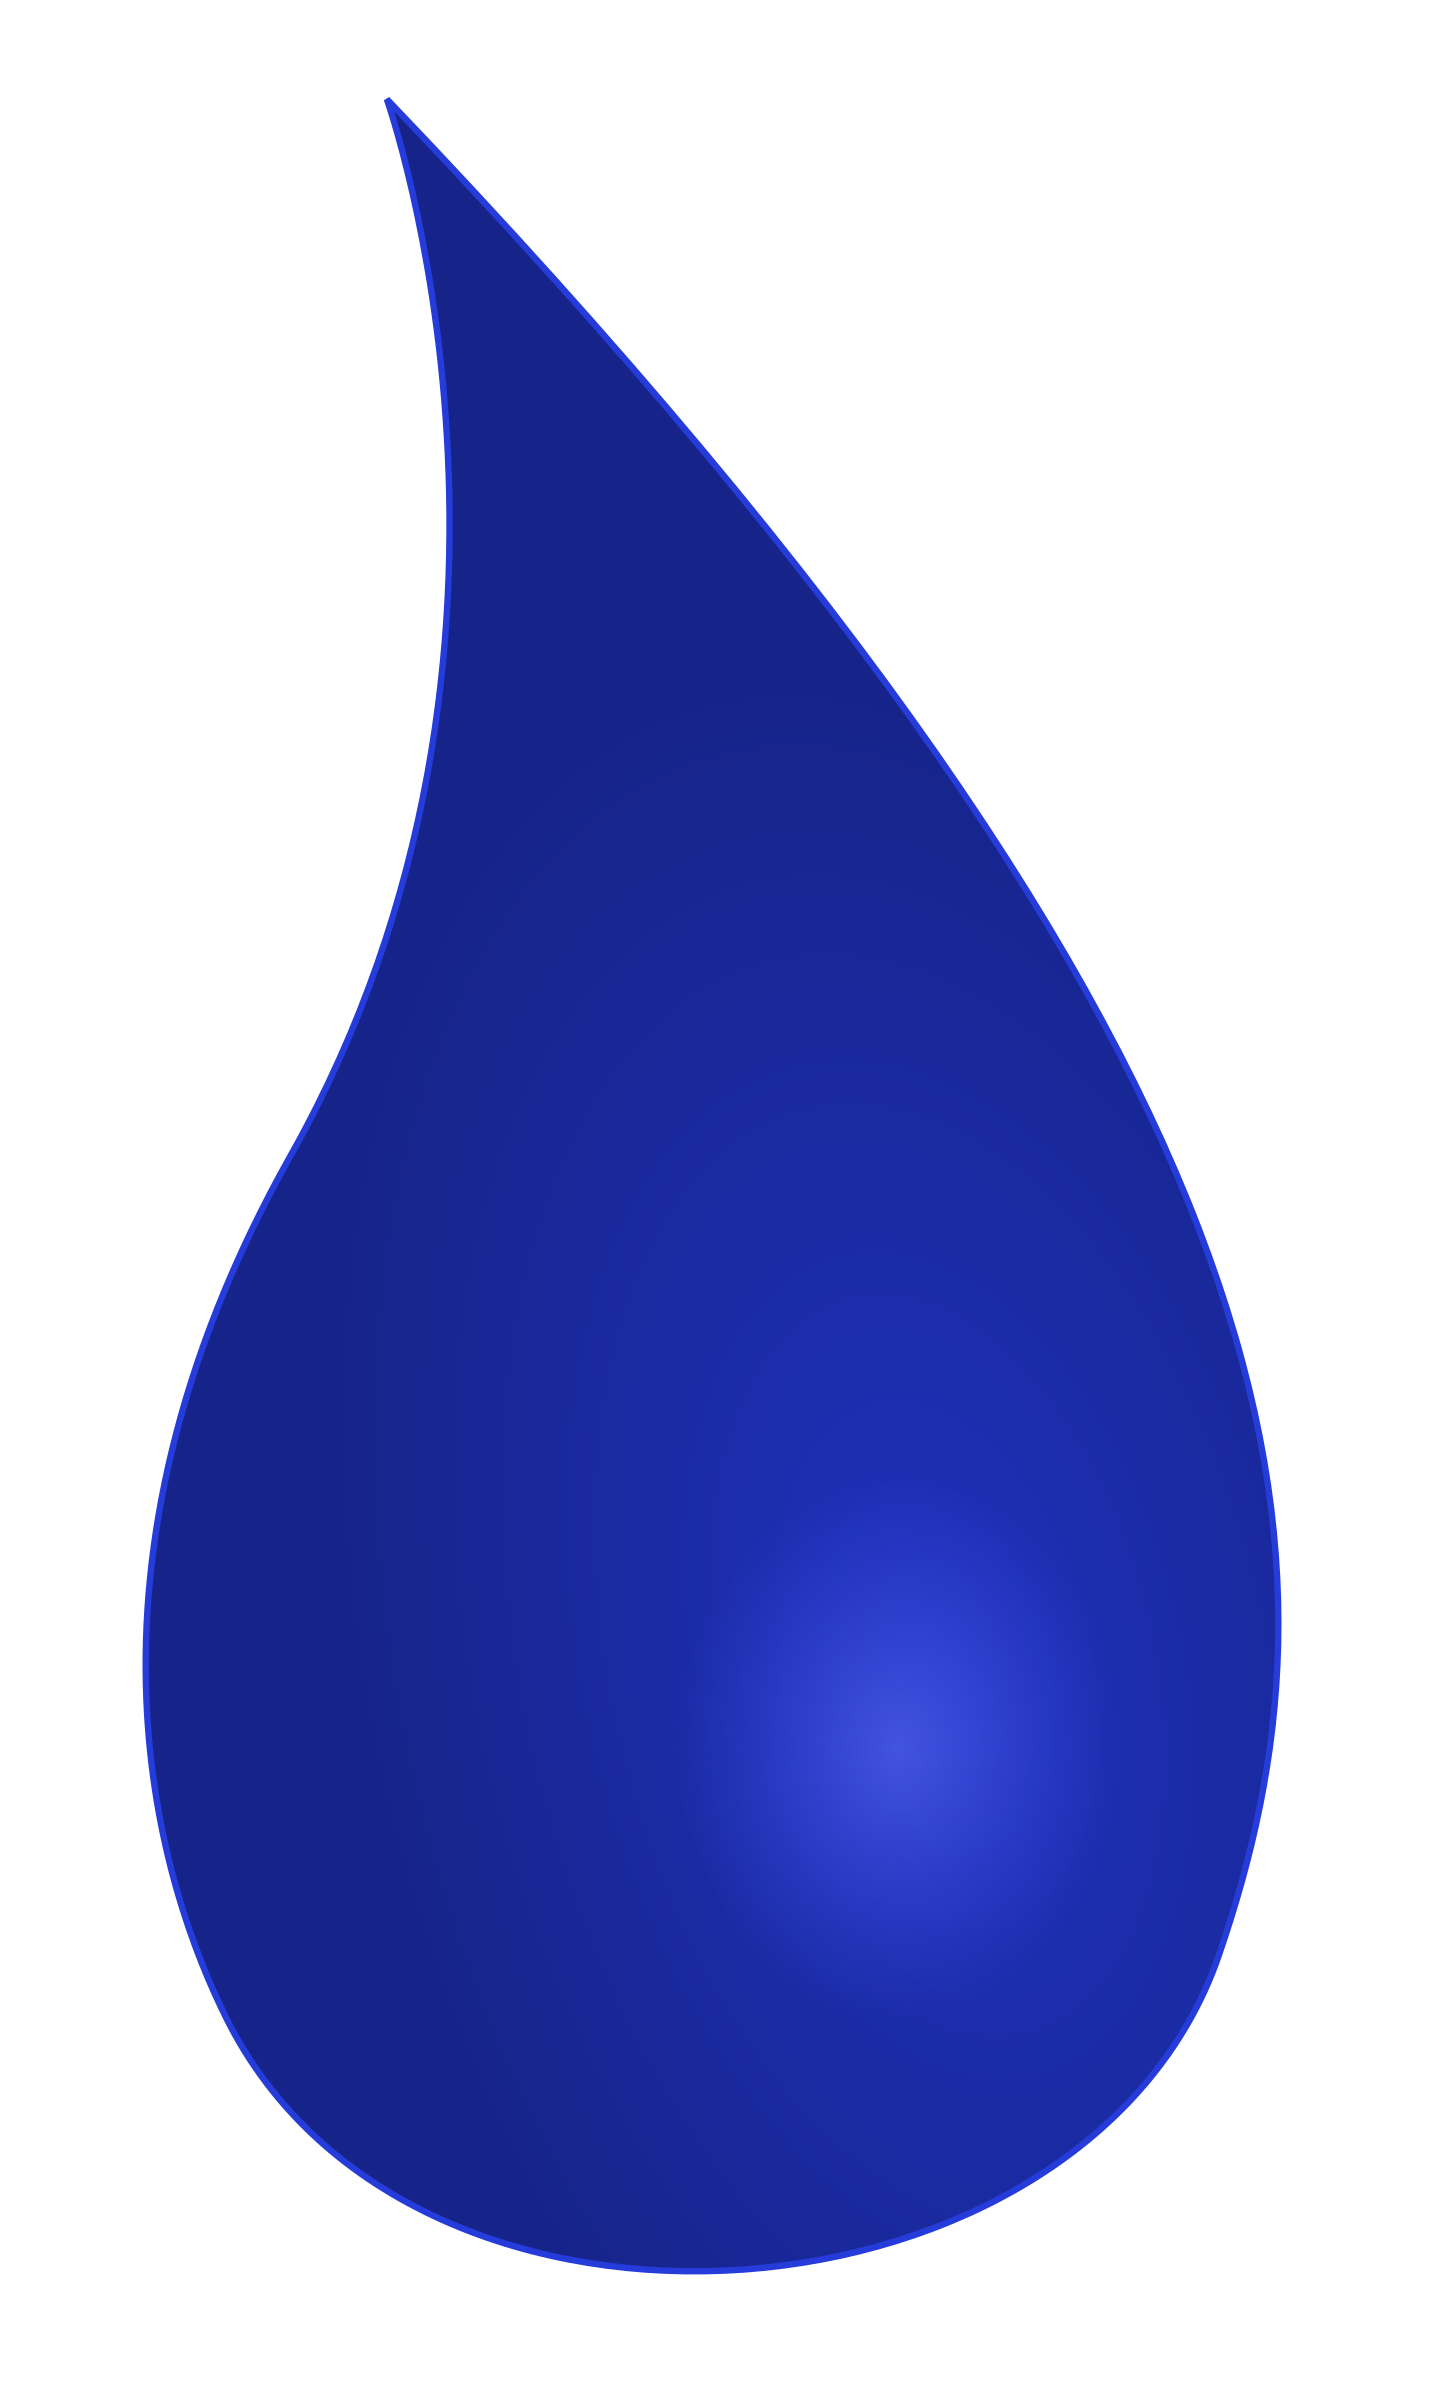 Blue blue waterdrop by JoyOfColors